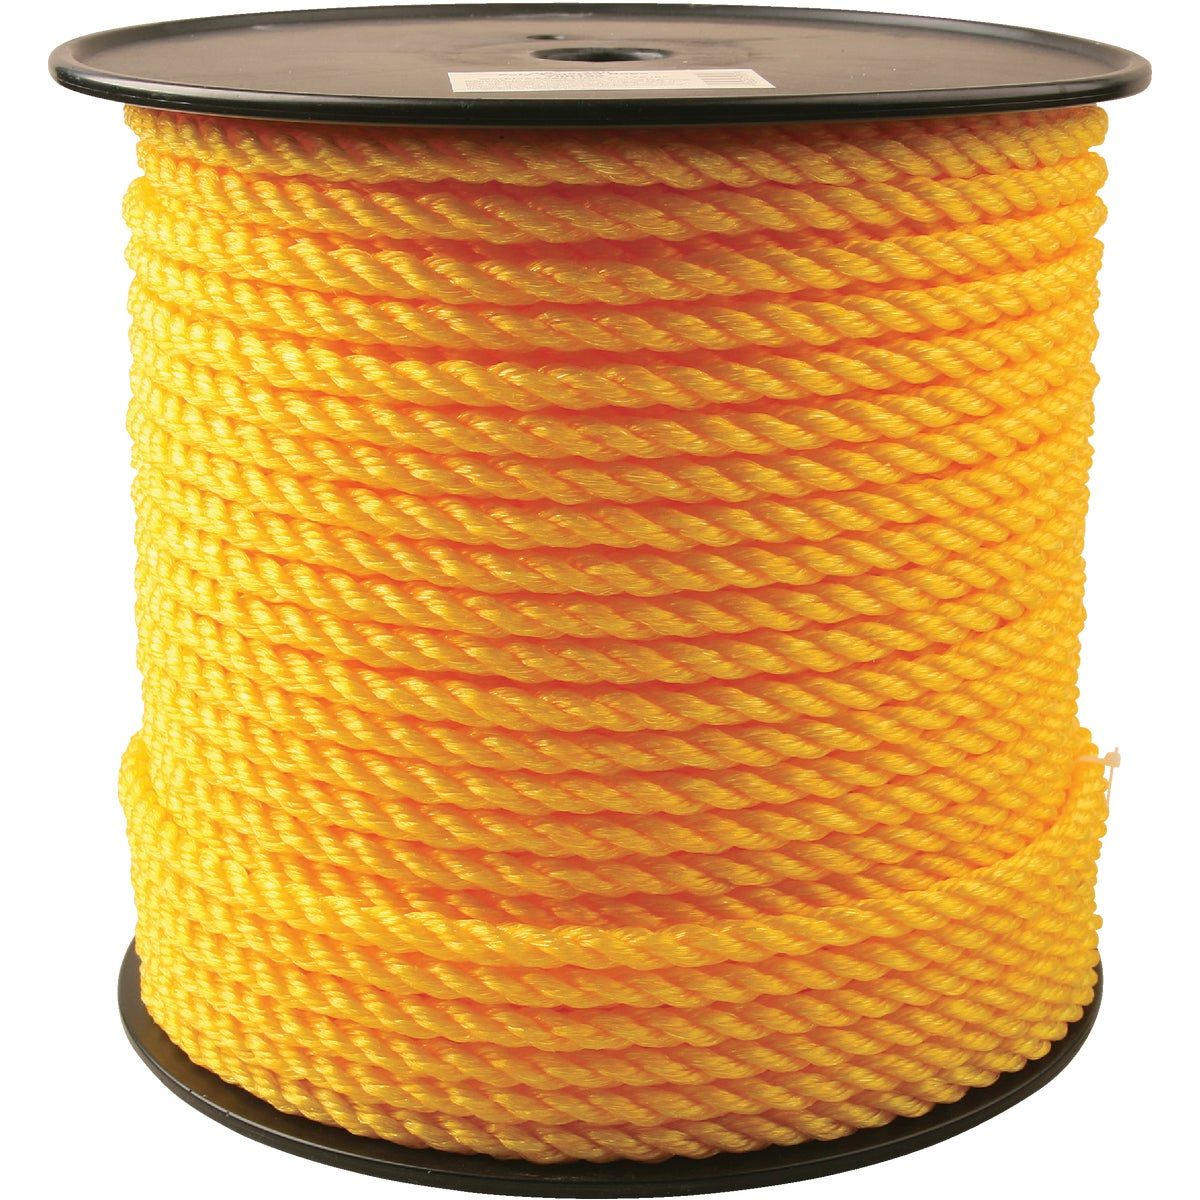 "3/8""X600' POLY TWST ROPE - 700192 by Do it Best"